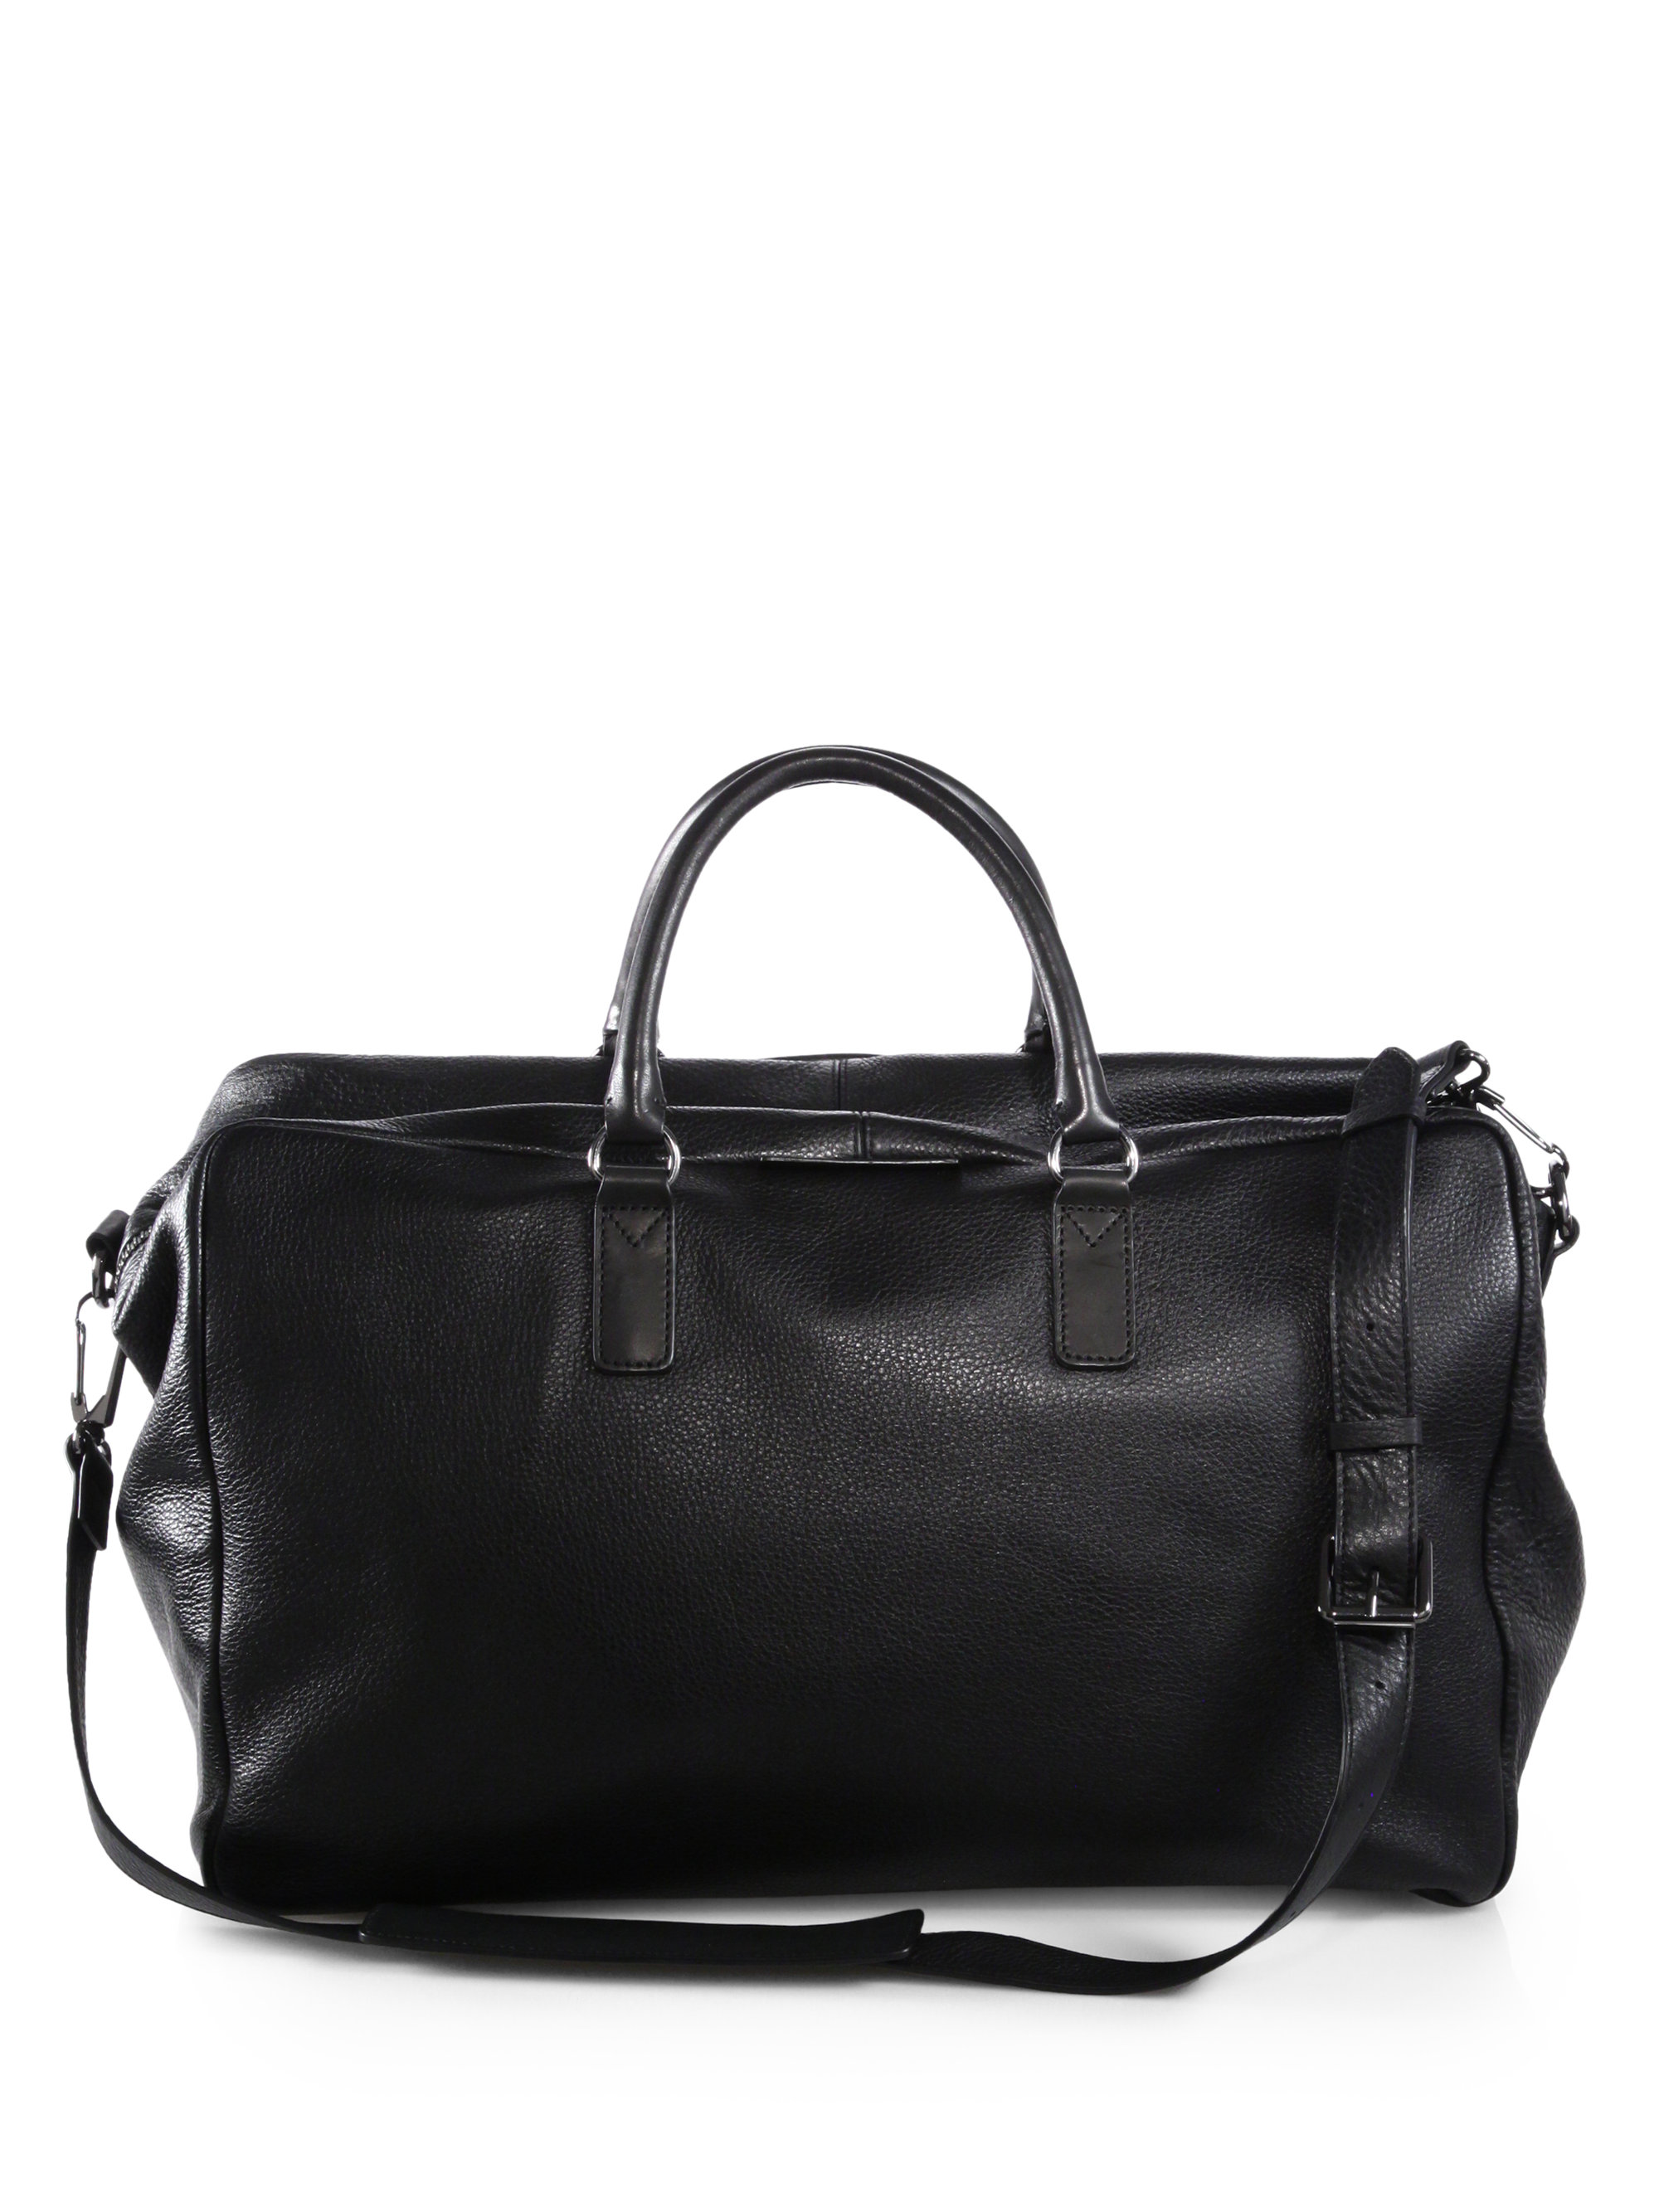 9d2547fb52 Lyst - Marc By Marc Jacobs Pebbled Leather Duffle Bag in Black for Men